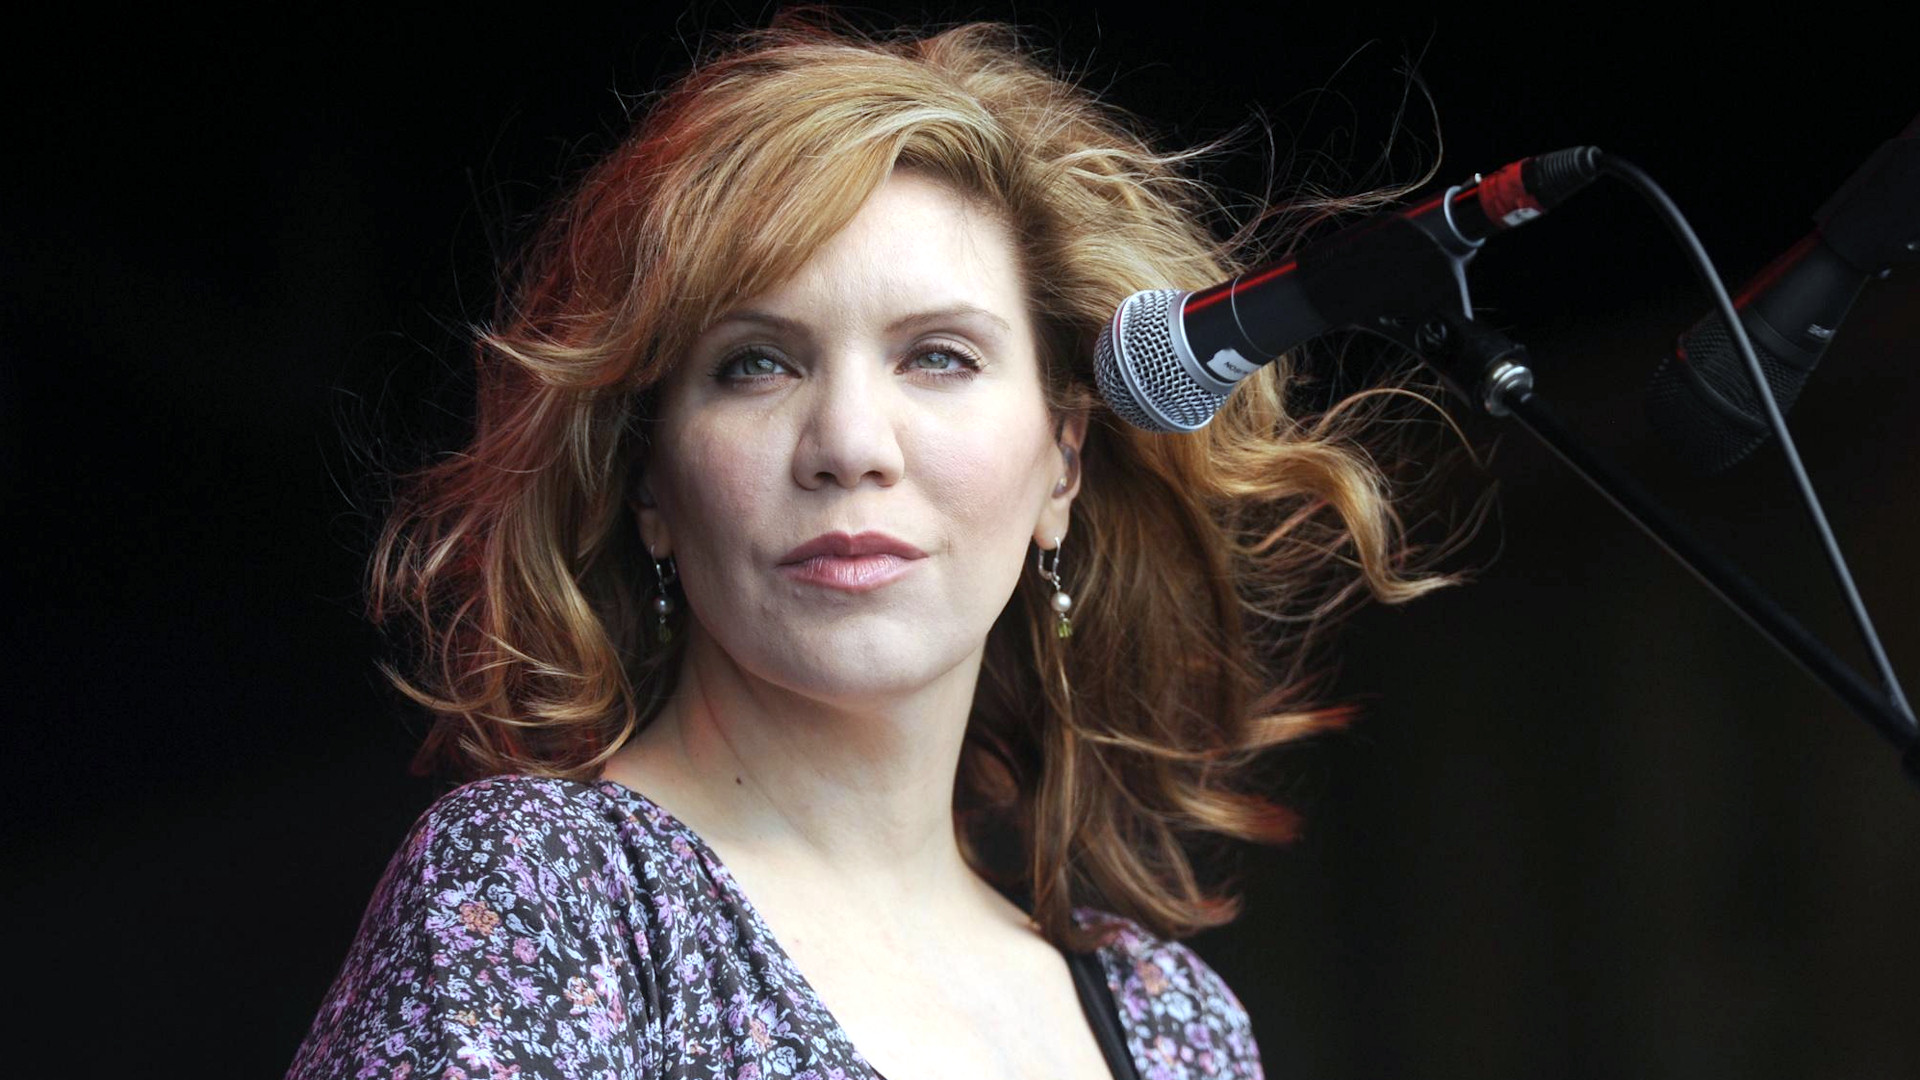 Babe french alison krauss young gypsy